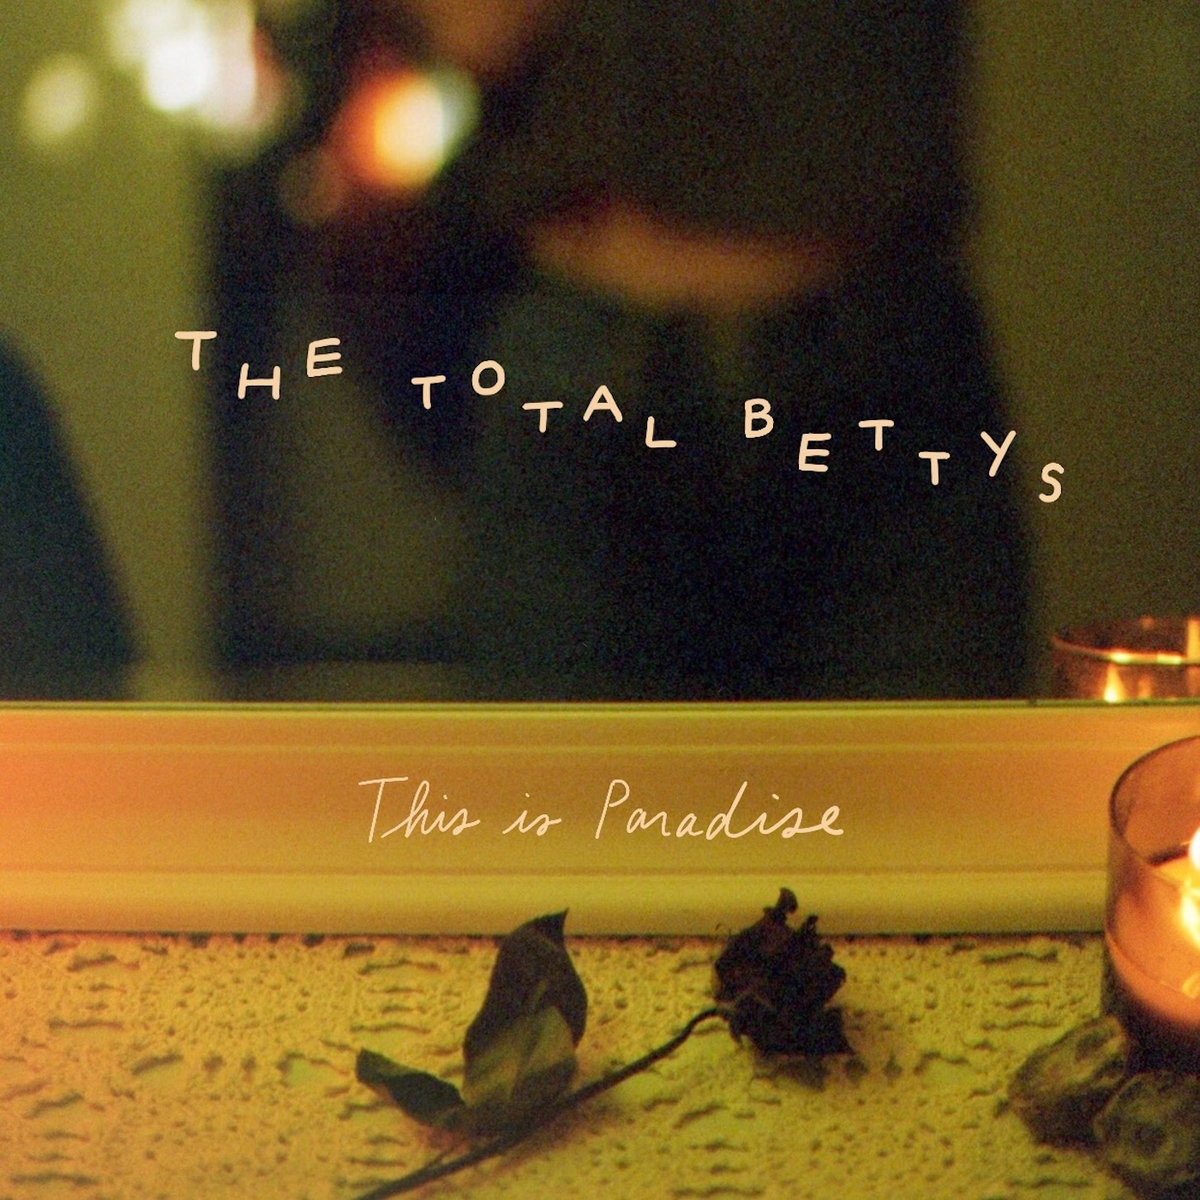 The Total Bettys